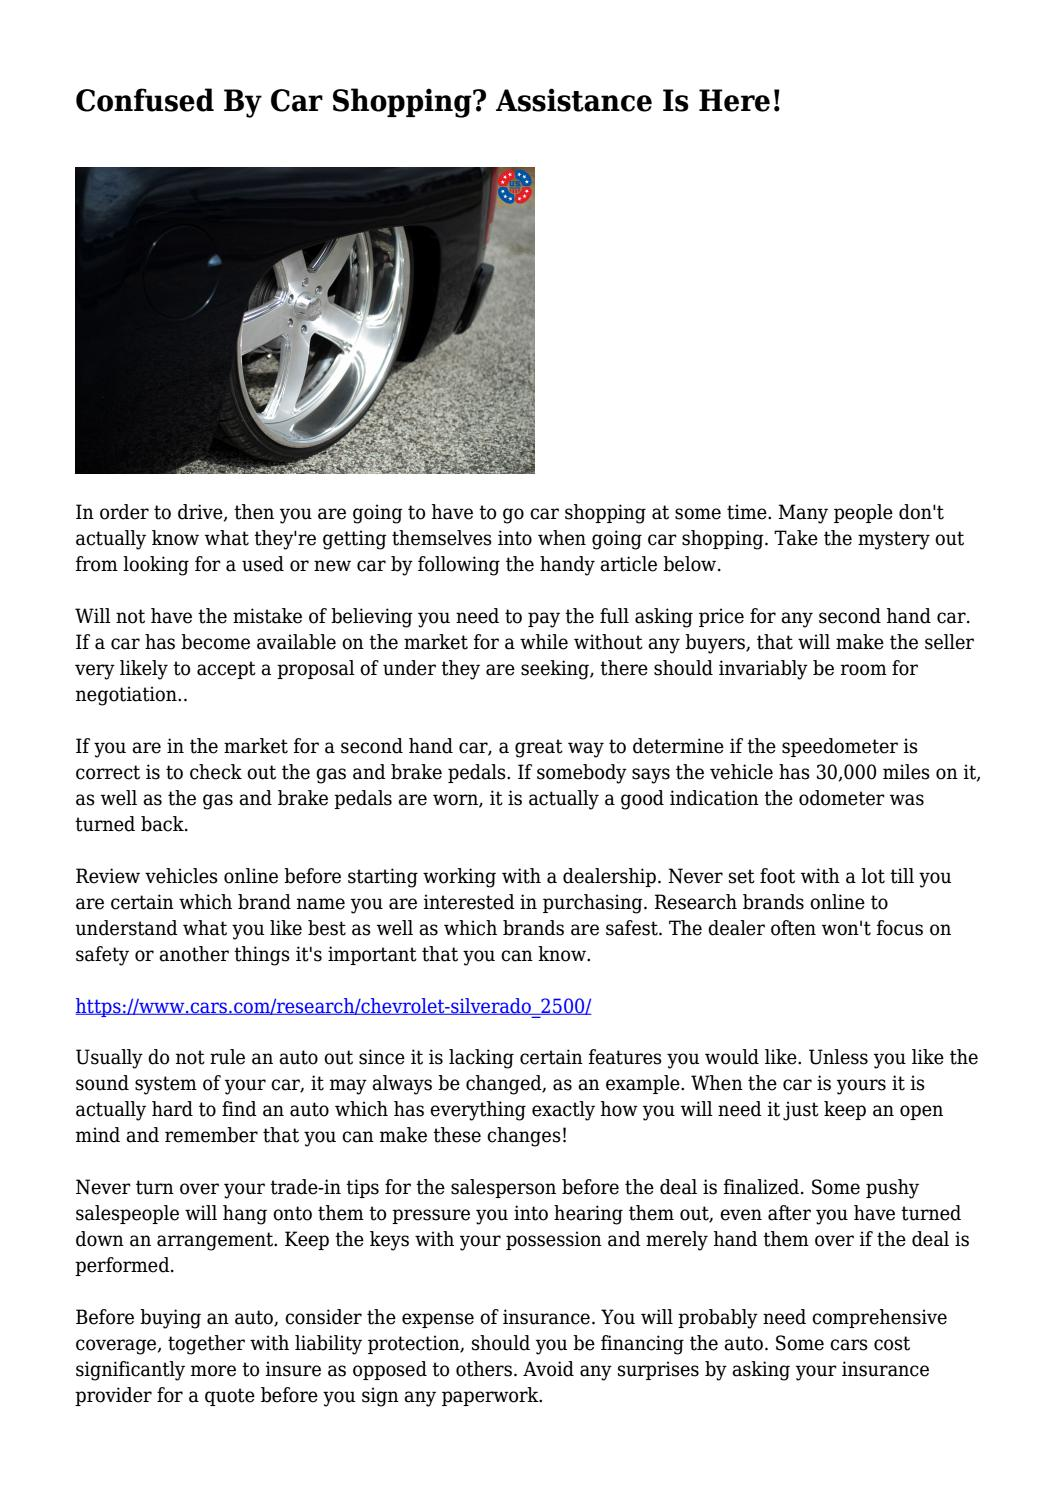 Confused By Car Shopping Assistance Is Here By Zanycan6175 Issuu